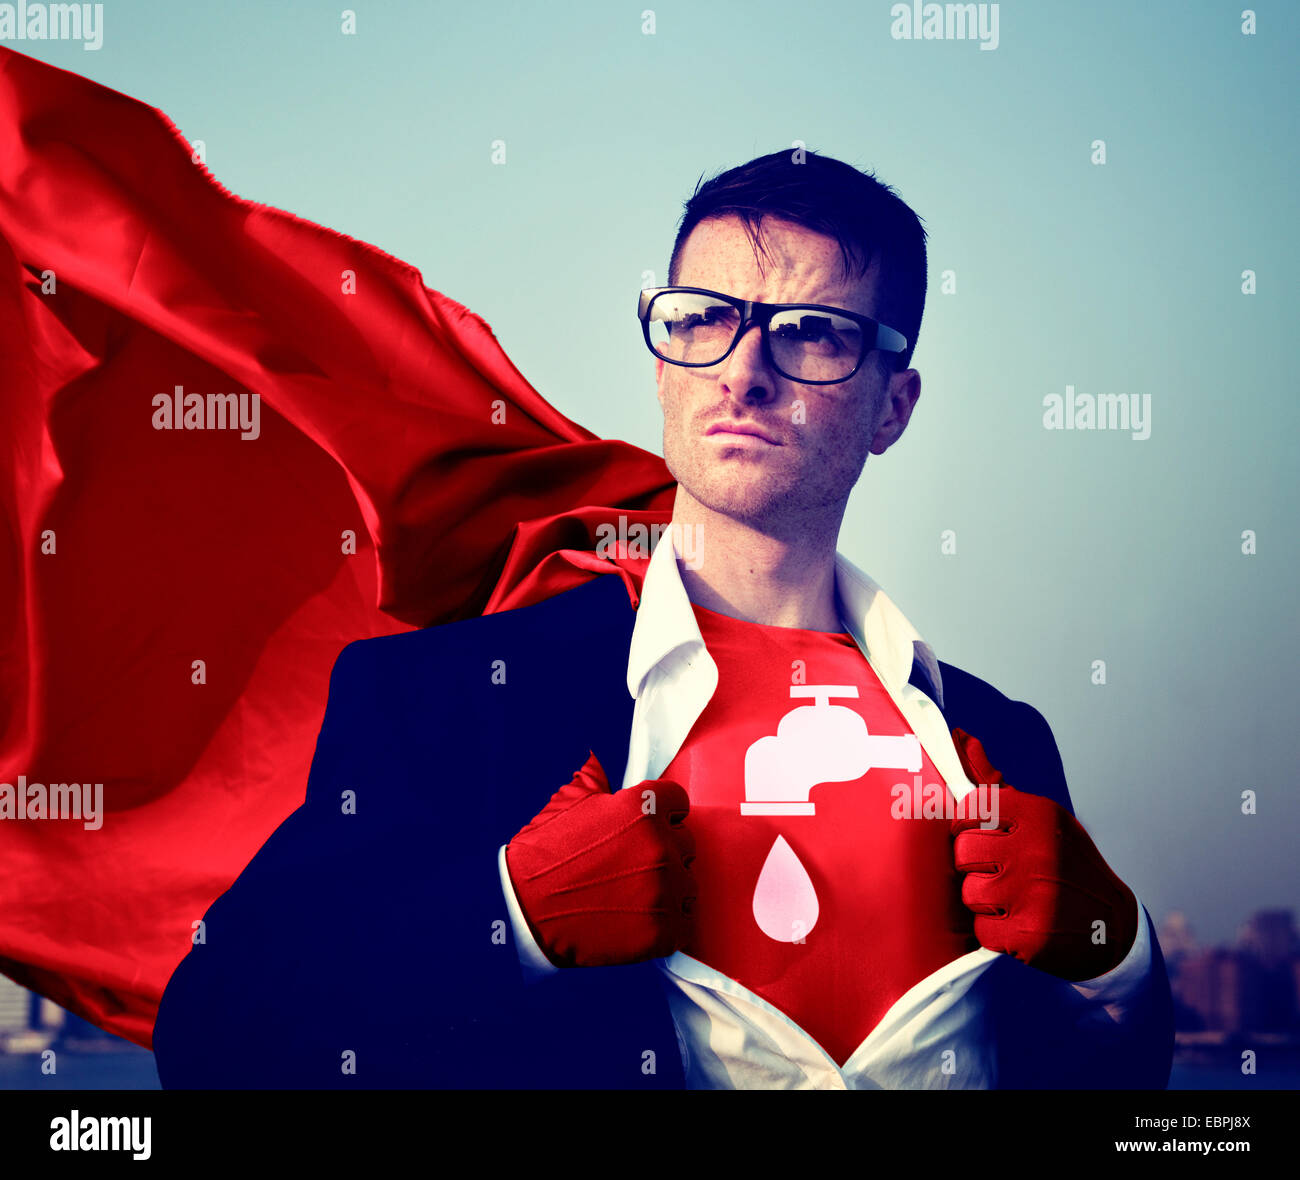 Water Saving Strong Superhero Success Professional Empowerment Stock Concept - Stock Image